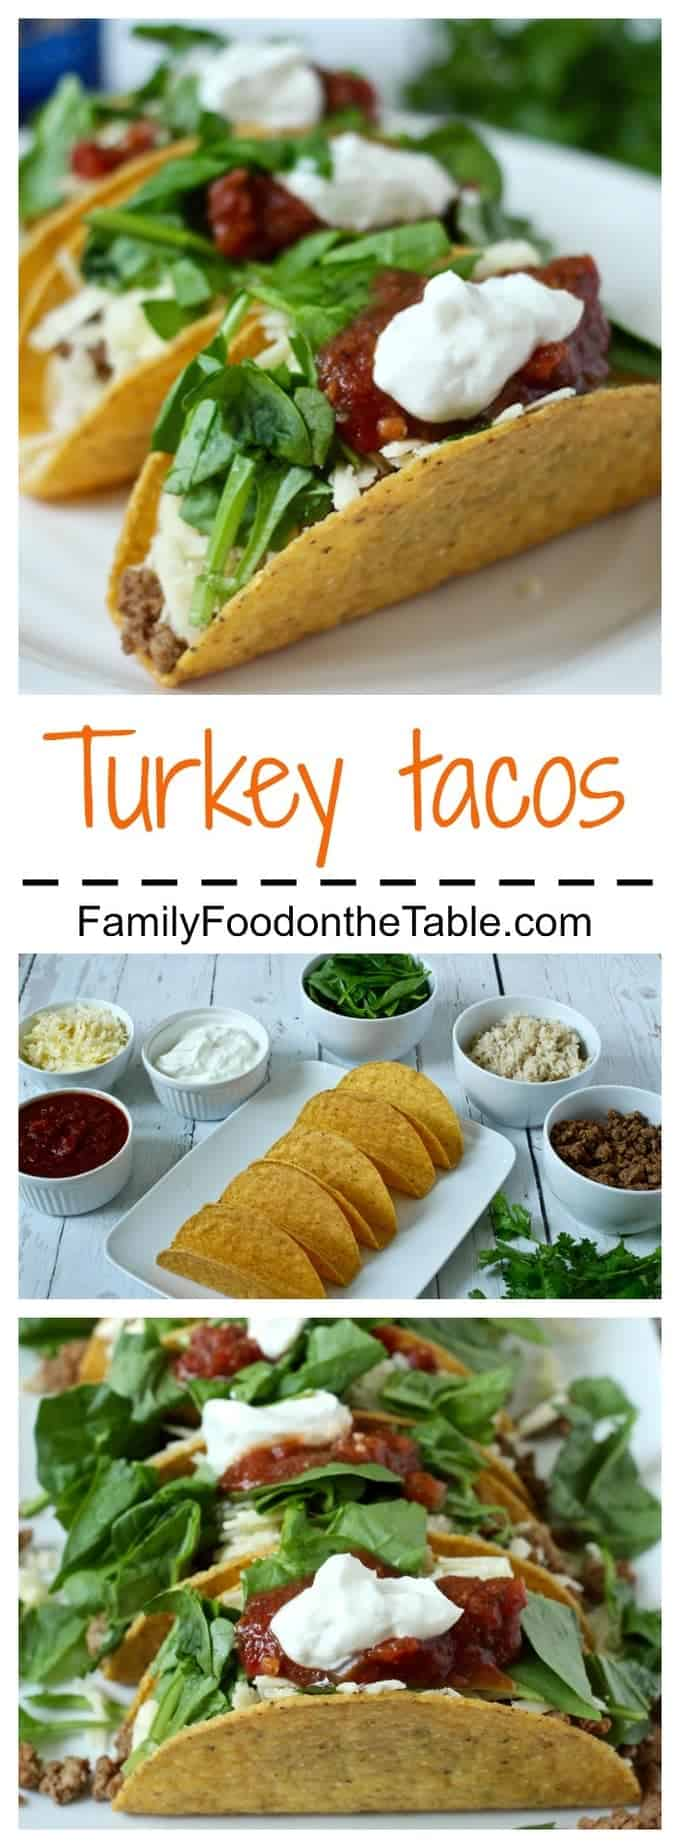 Turkey tacos are an easy, healthy weeknight dinner. Just add your favorite toppings!